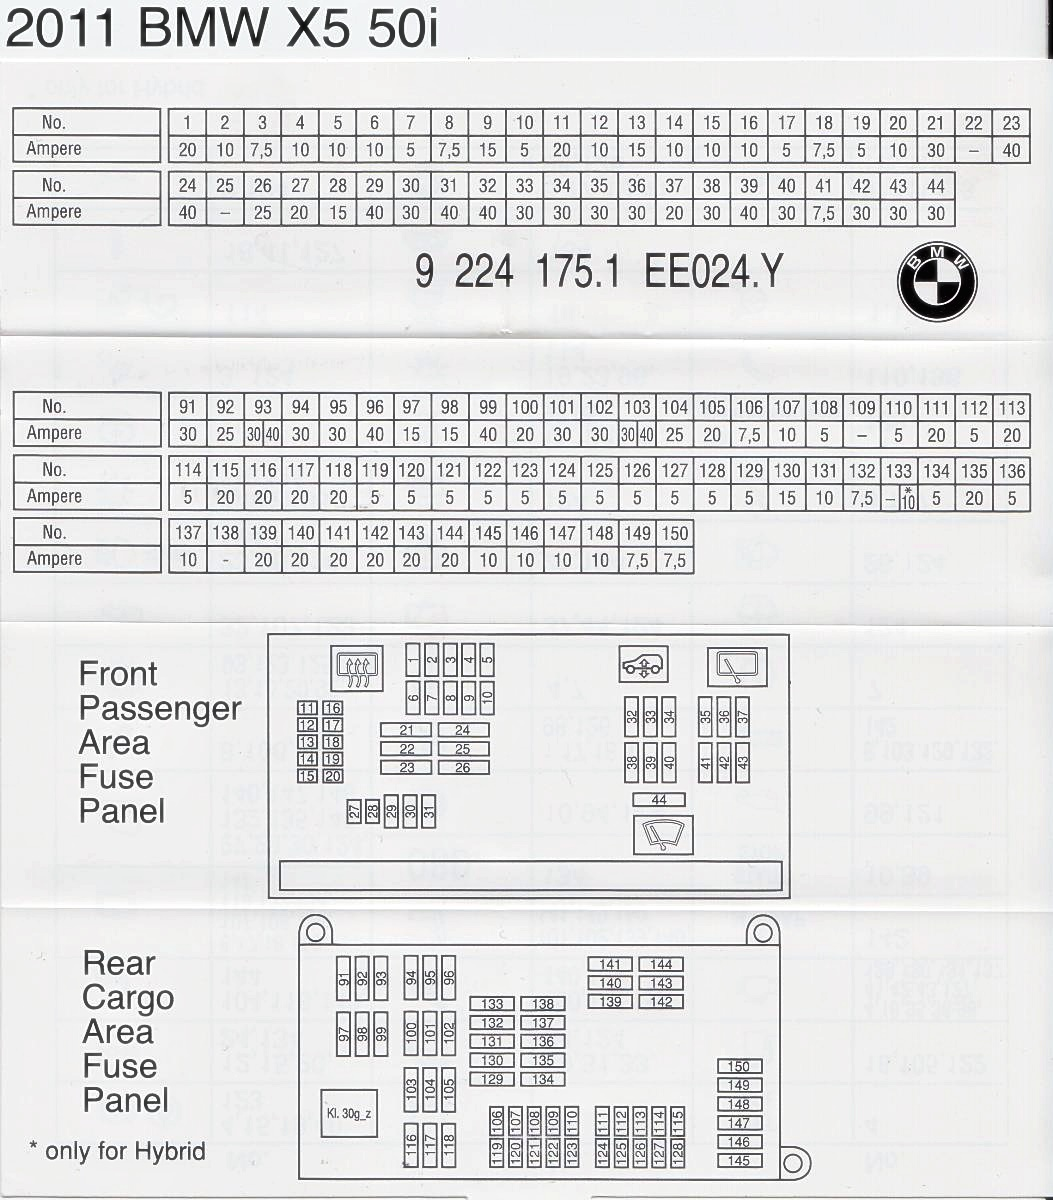 X5_T70_FusePanels bmw x5 fuse box diagram 2014 wiring diagrams instruction seat ibiza 2015 fuse box layout at soozxer.org